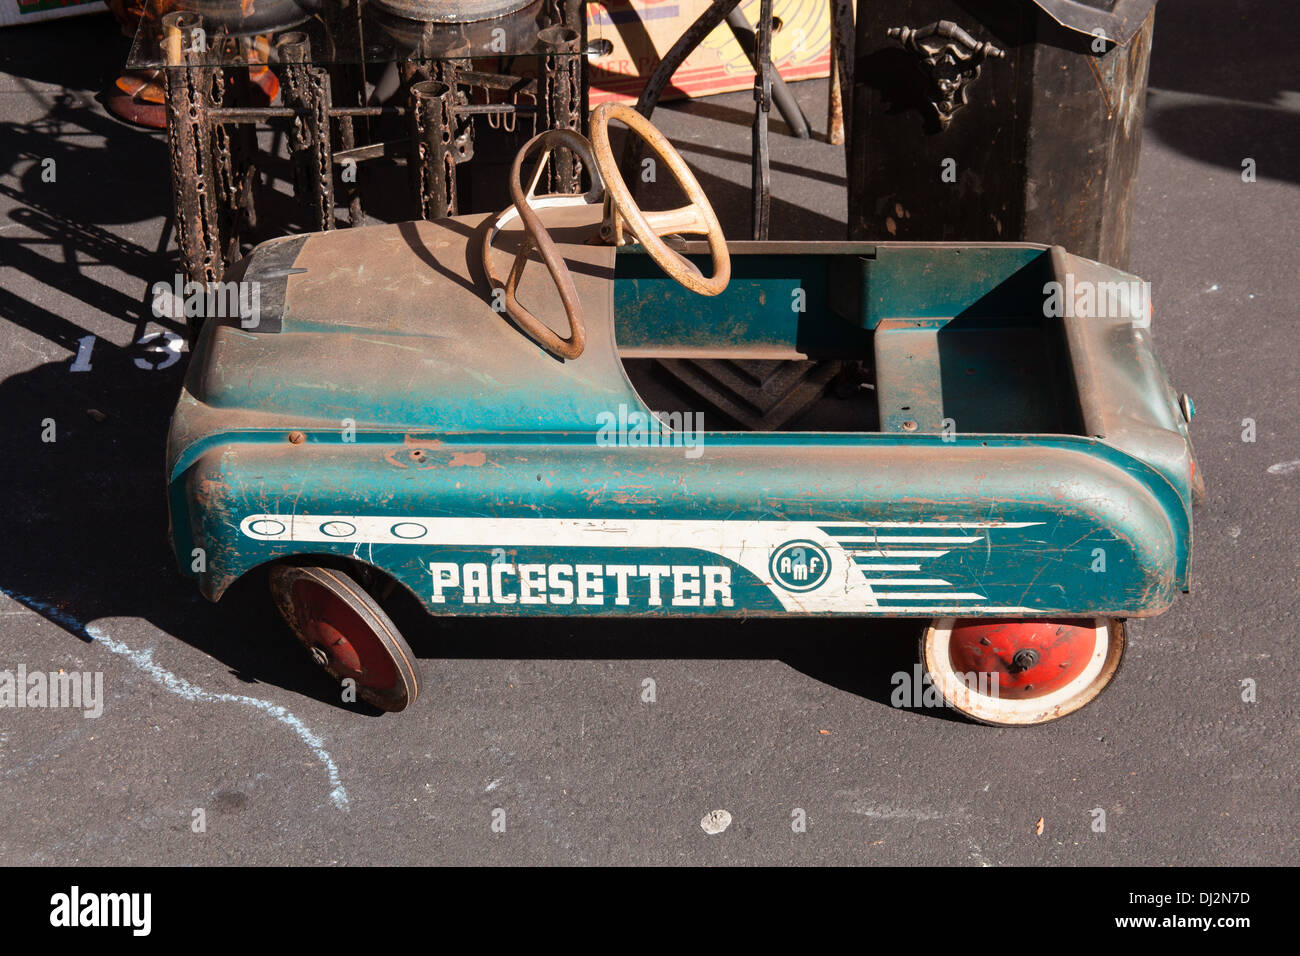 Antique Toy Pedal Car For Sale At GreenFlea Flea Market